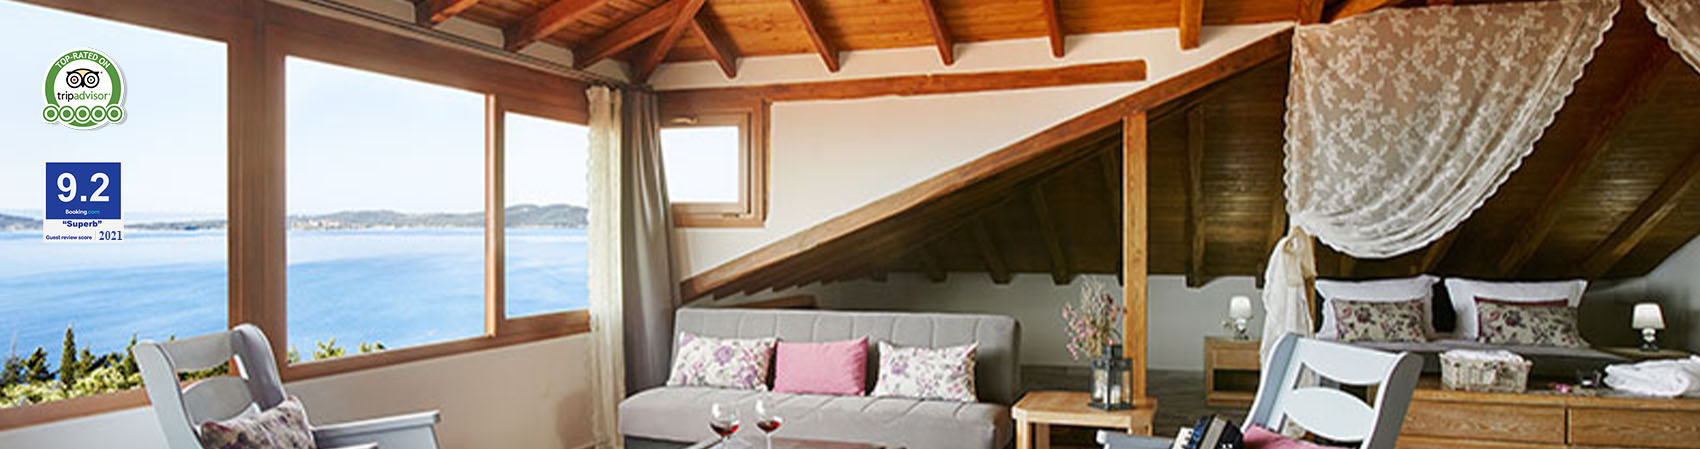 Archodiko Toliadi luxury Rooms